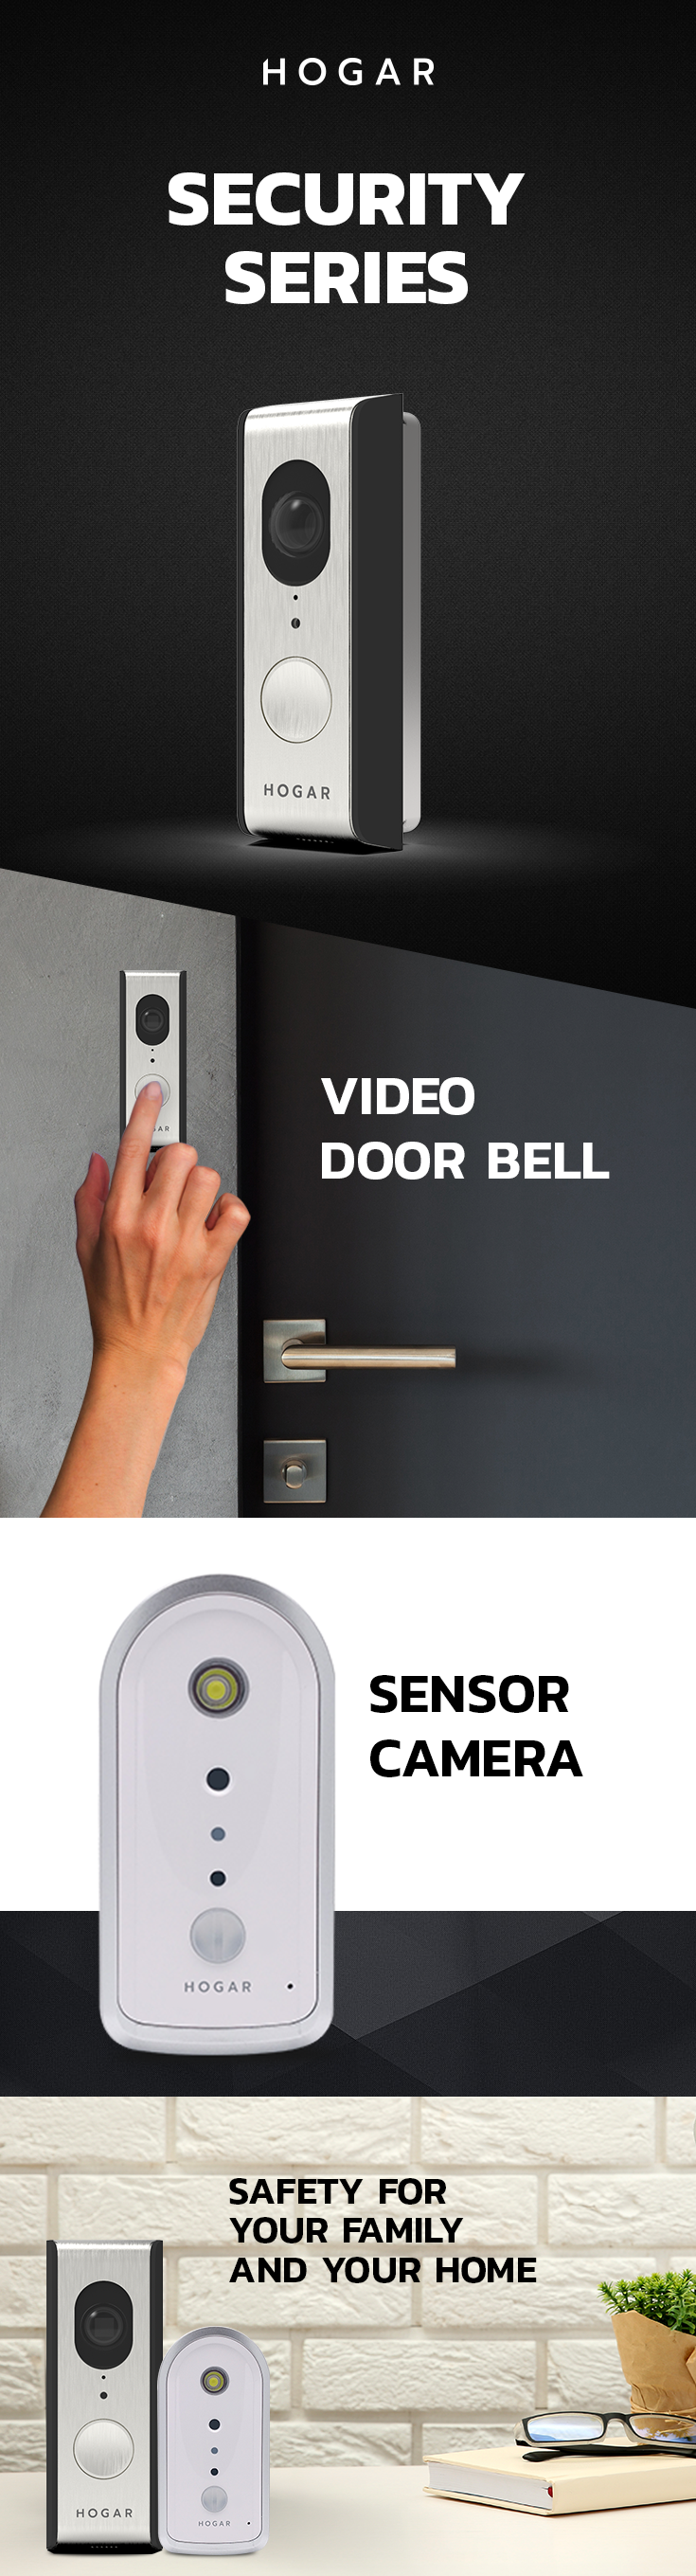 The Best Smart Home Security Protection And Ongoing Support In The Home Security Industry Today To Deliver Smart Home Security Home Security Devices Smart Home